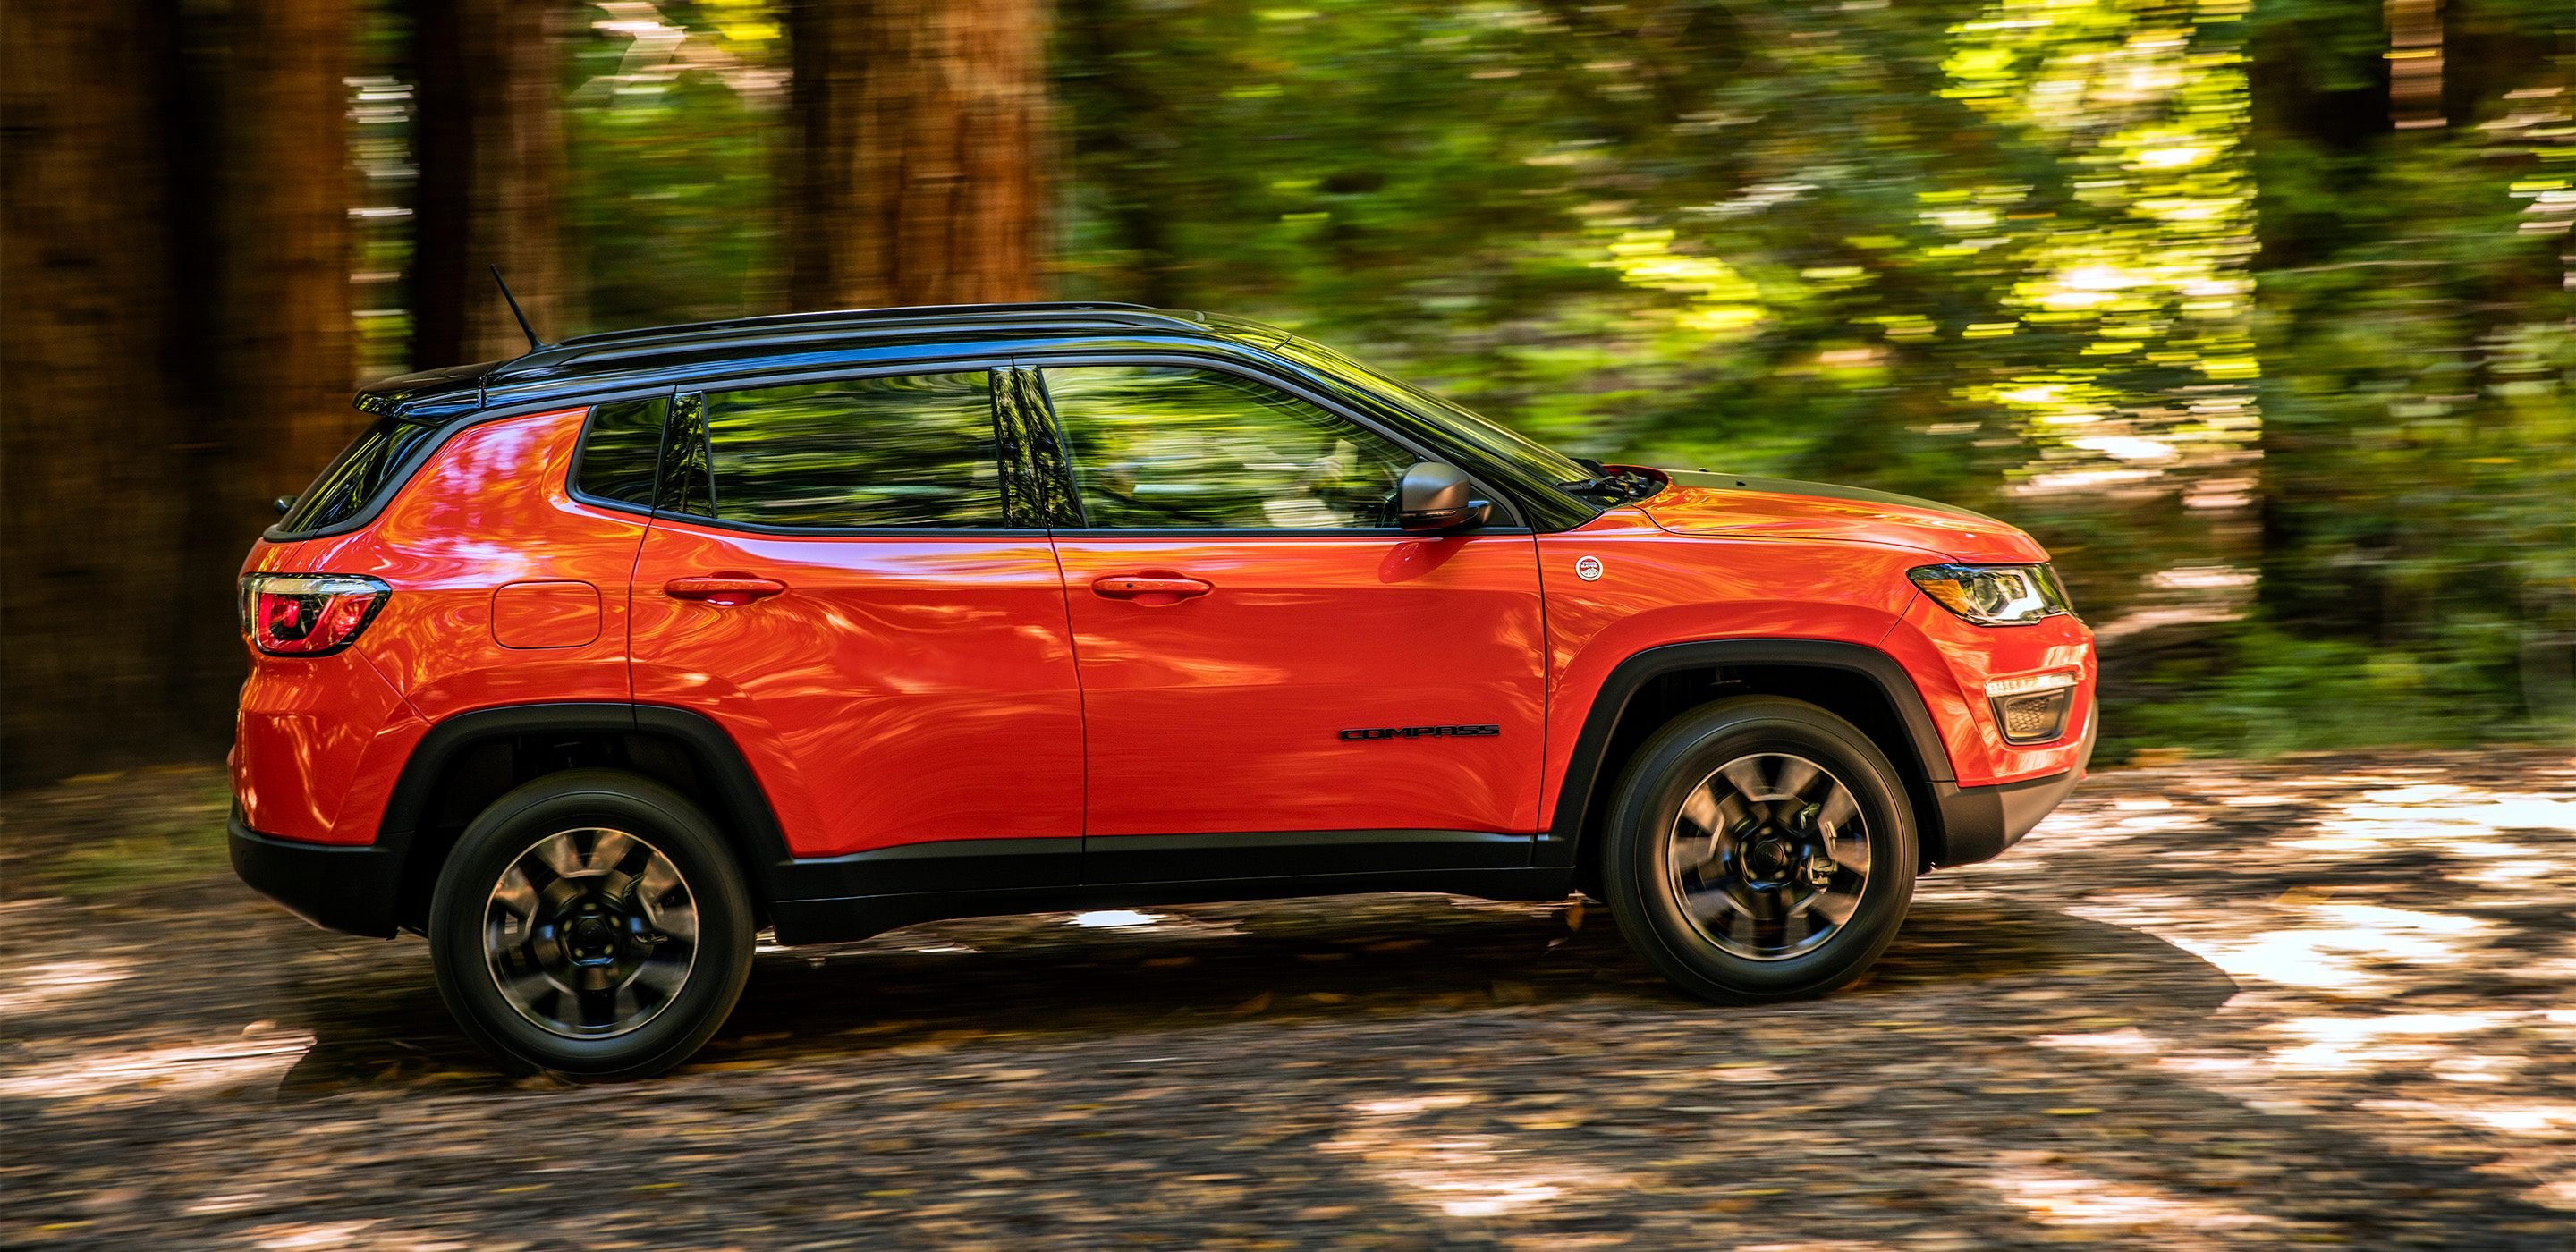 2017 All-New Jeep Compass Side Exterior Off-Road